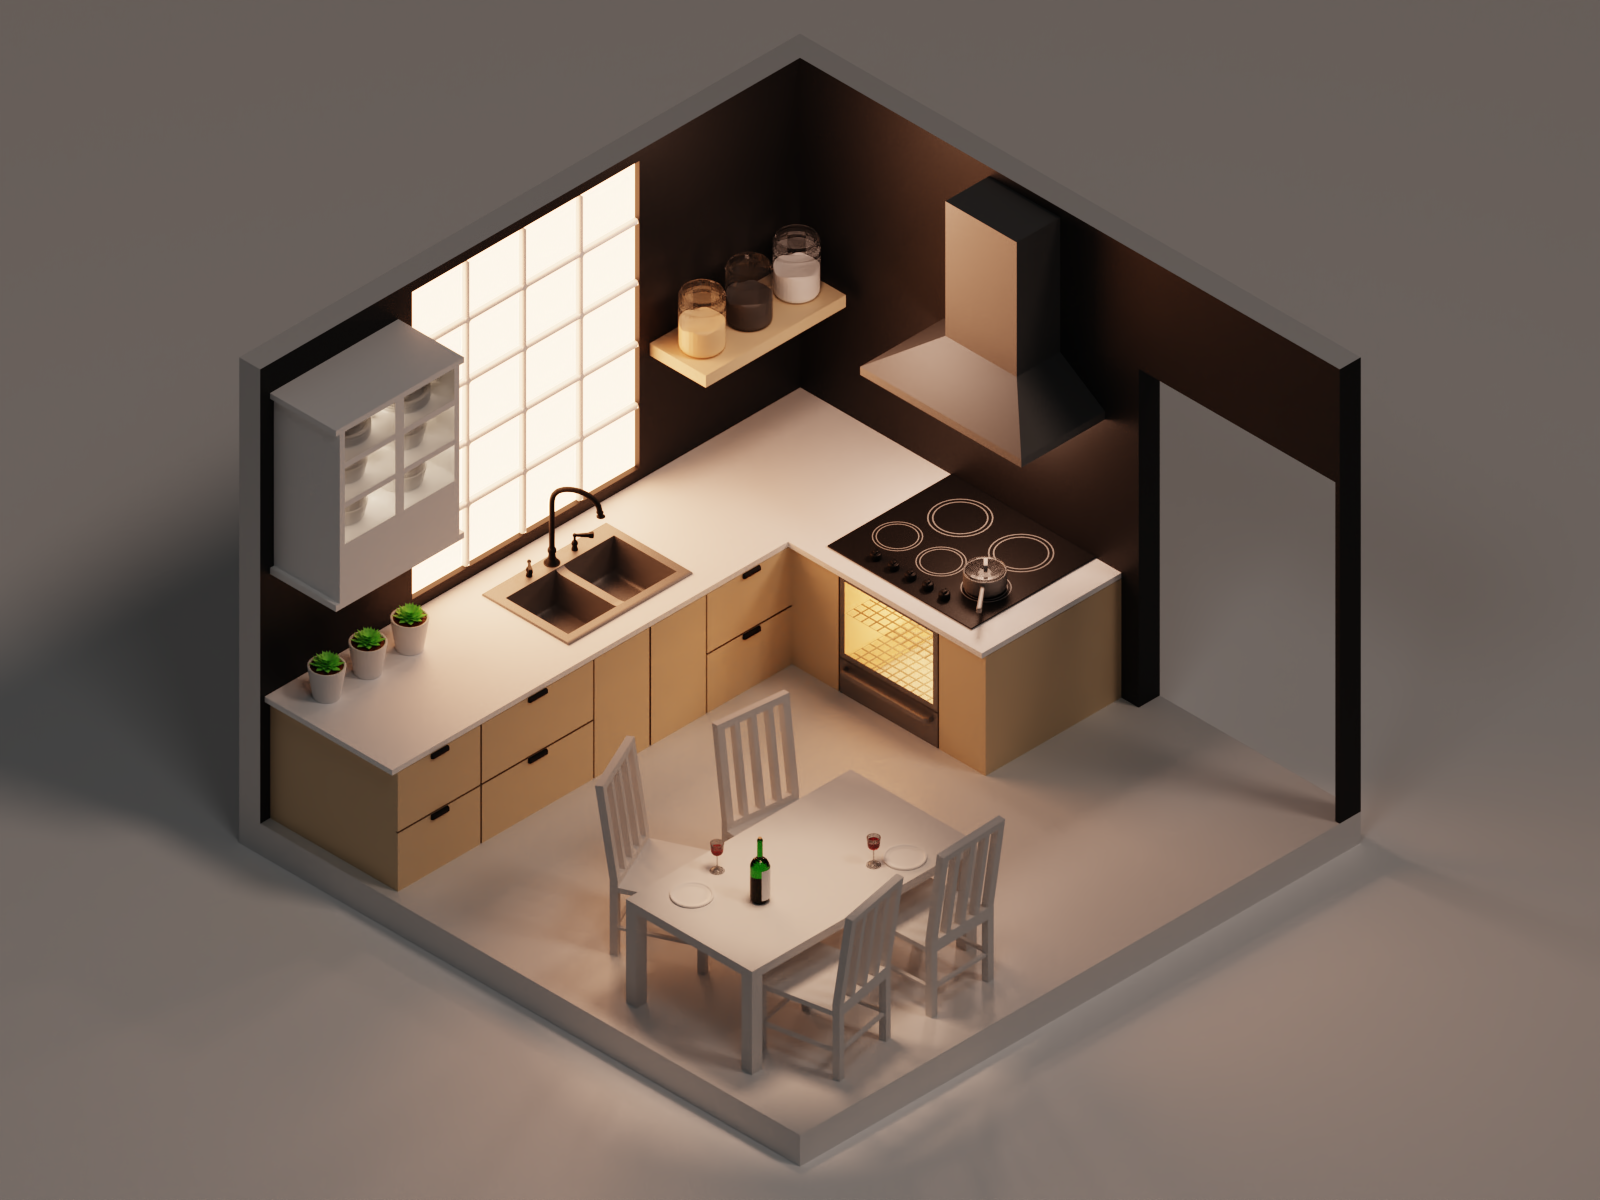 Isometric Kitchen Isometric Design Isometric Room Design